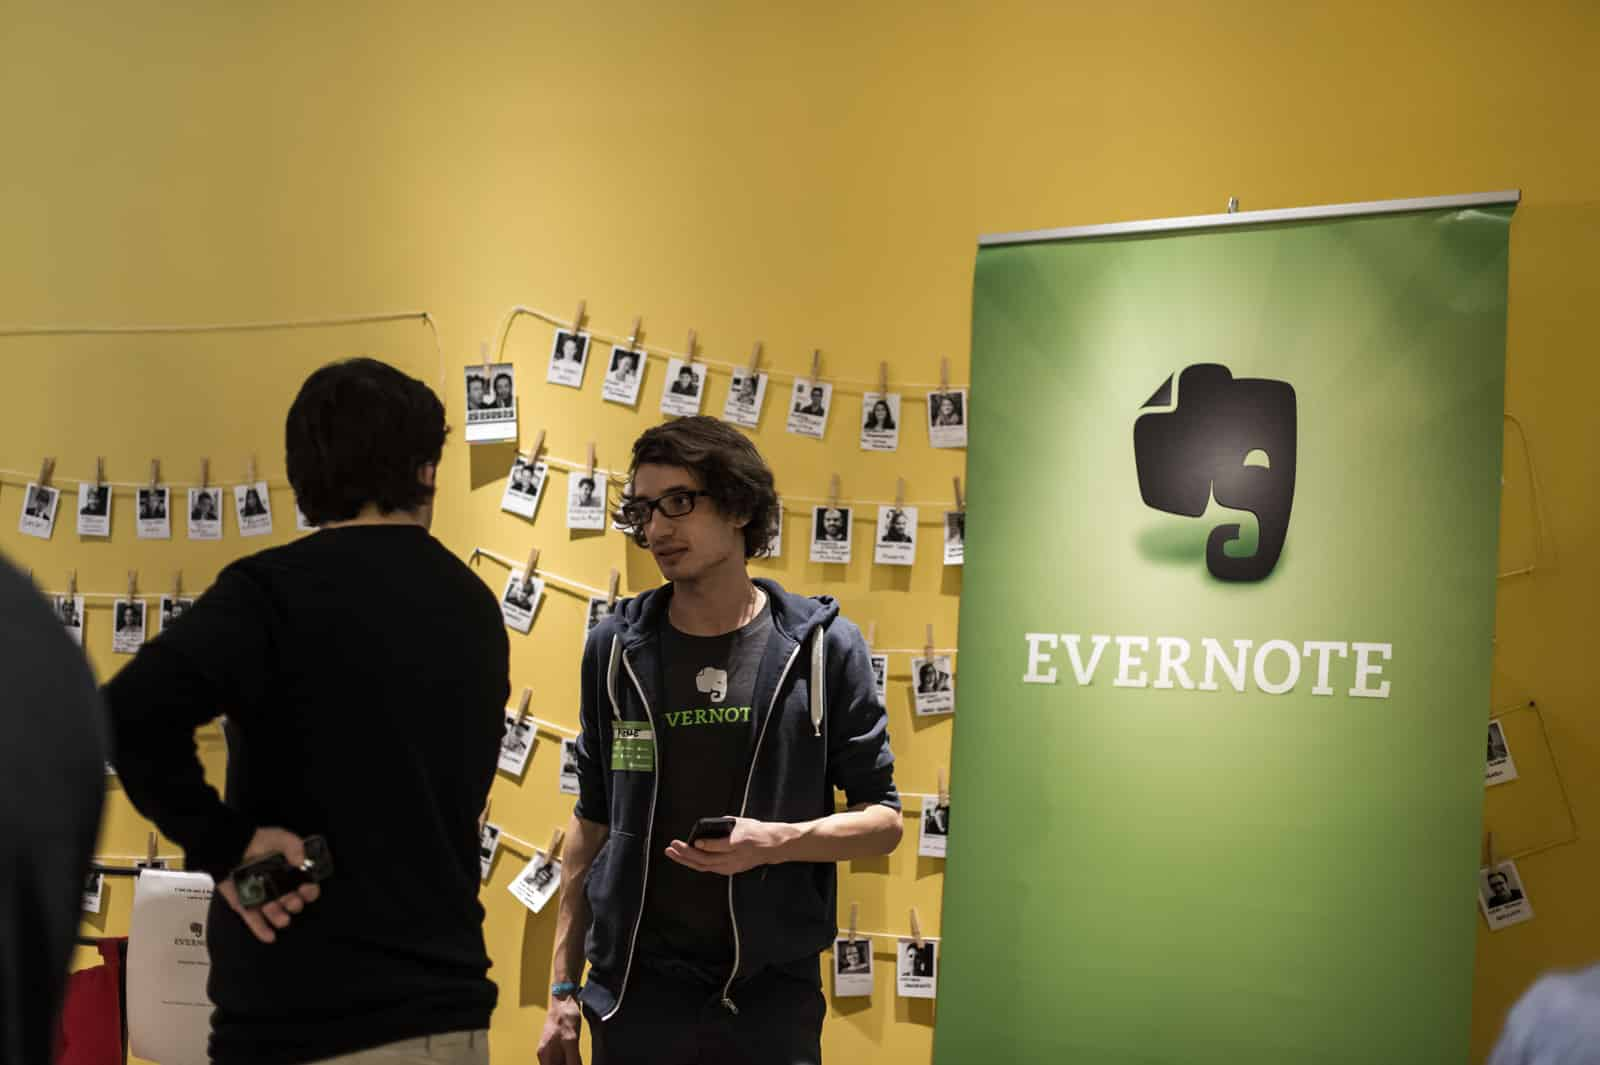 6 practical tips on how to use Evernote - Grow Exeter